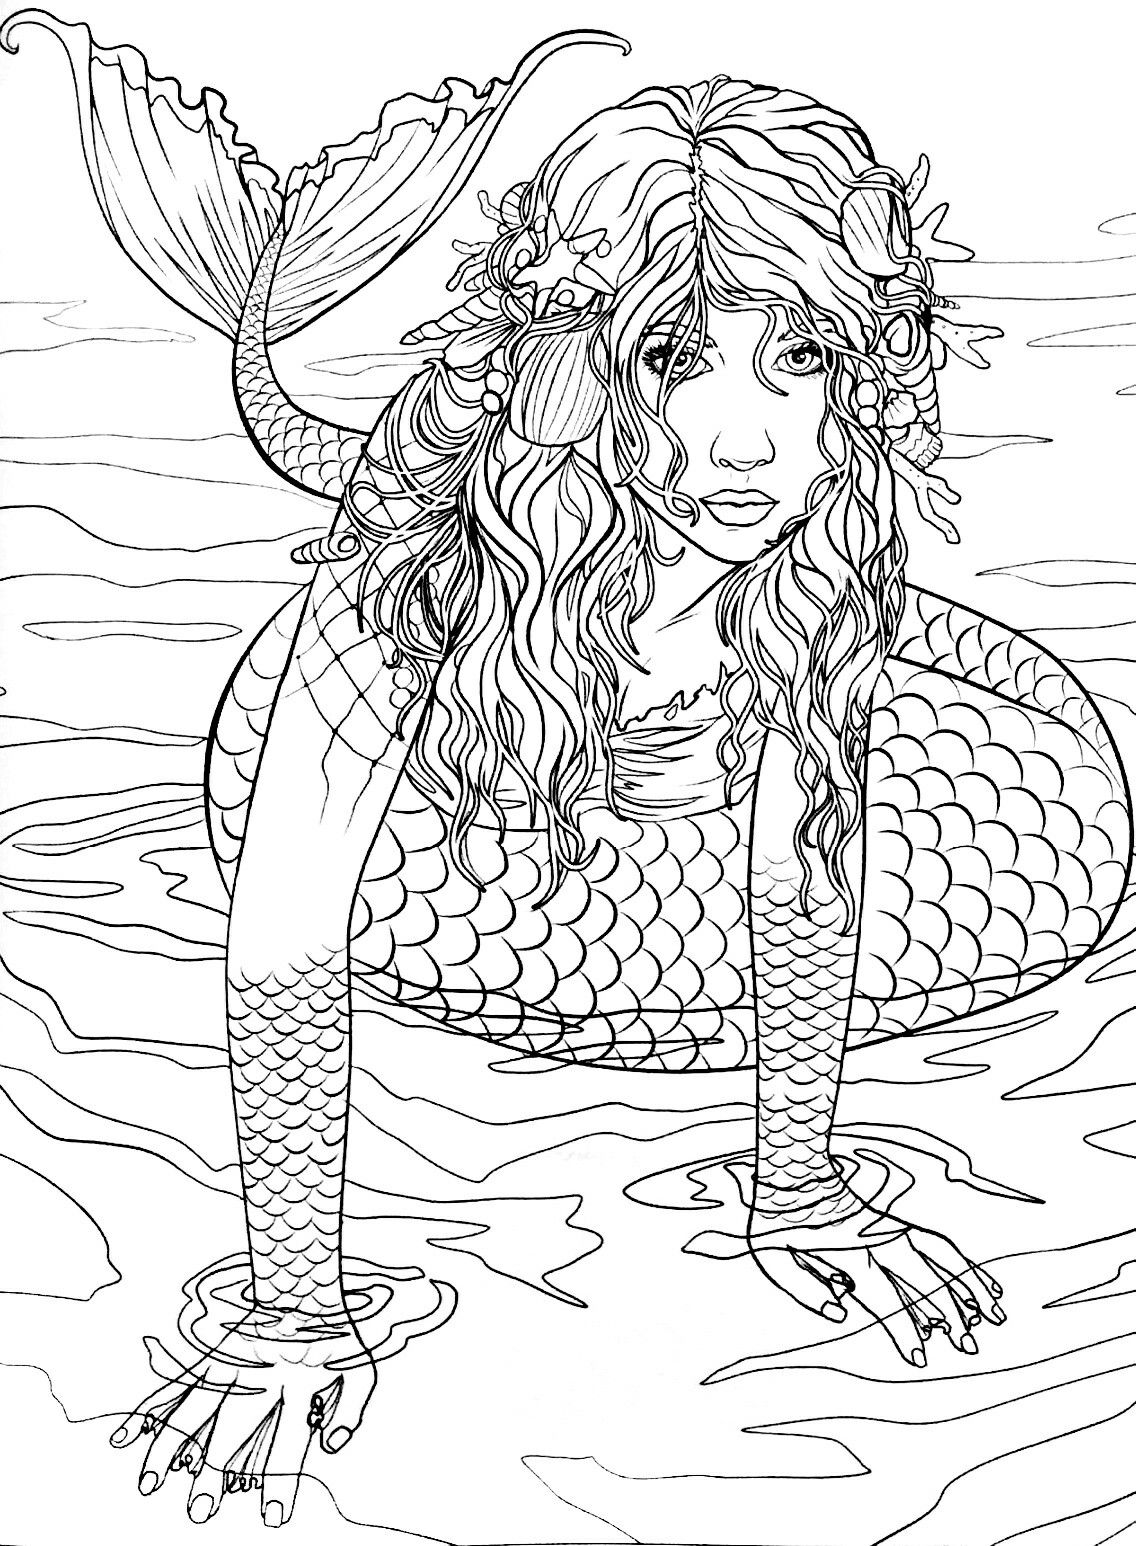 Pin By Manuel Villagra On Coloring Sirens Of The Sea Mermaid Coloring Pages Mermaid Coloring Book Mermaid Coloring